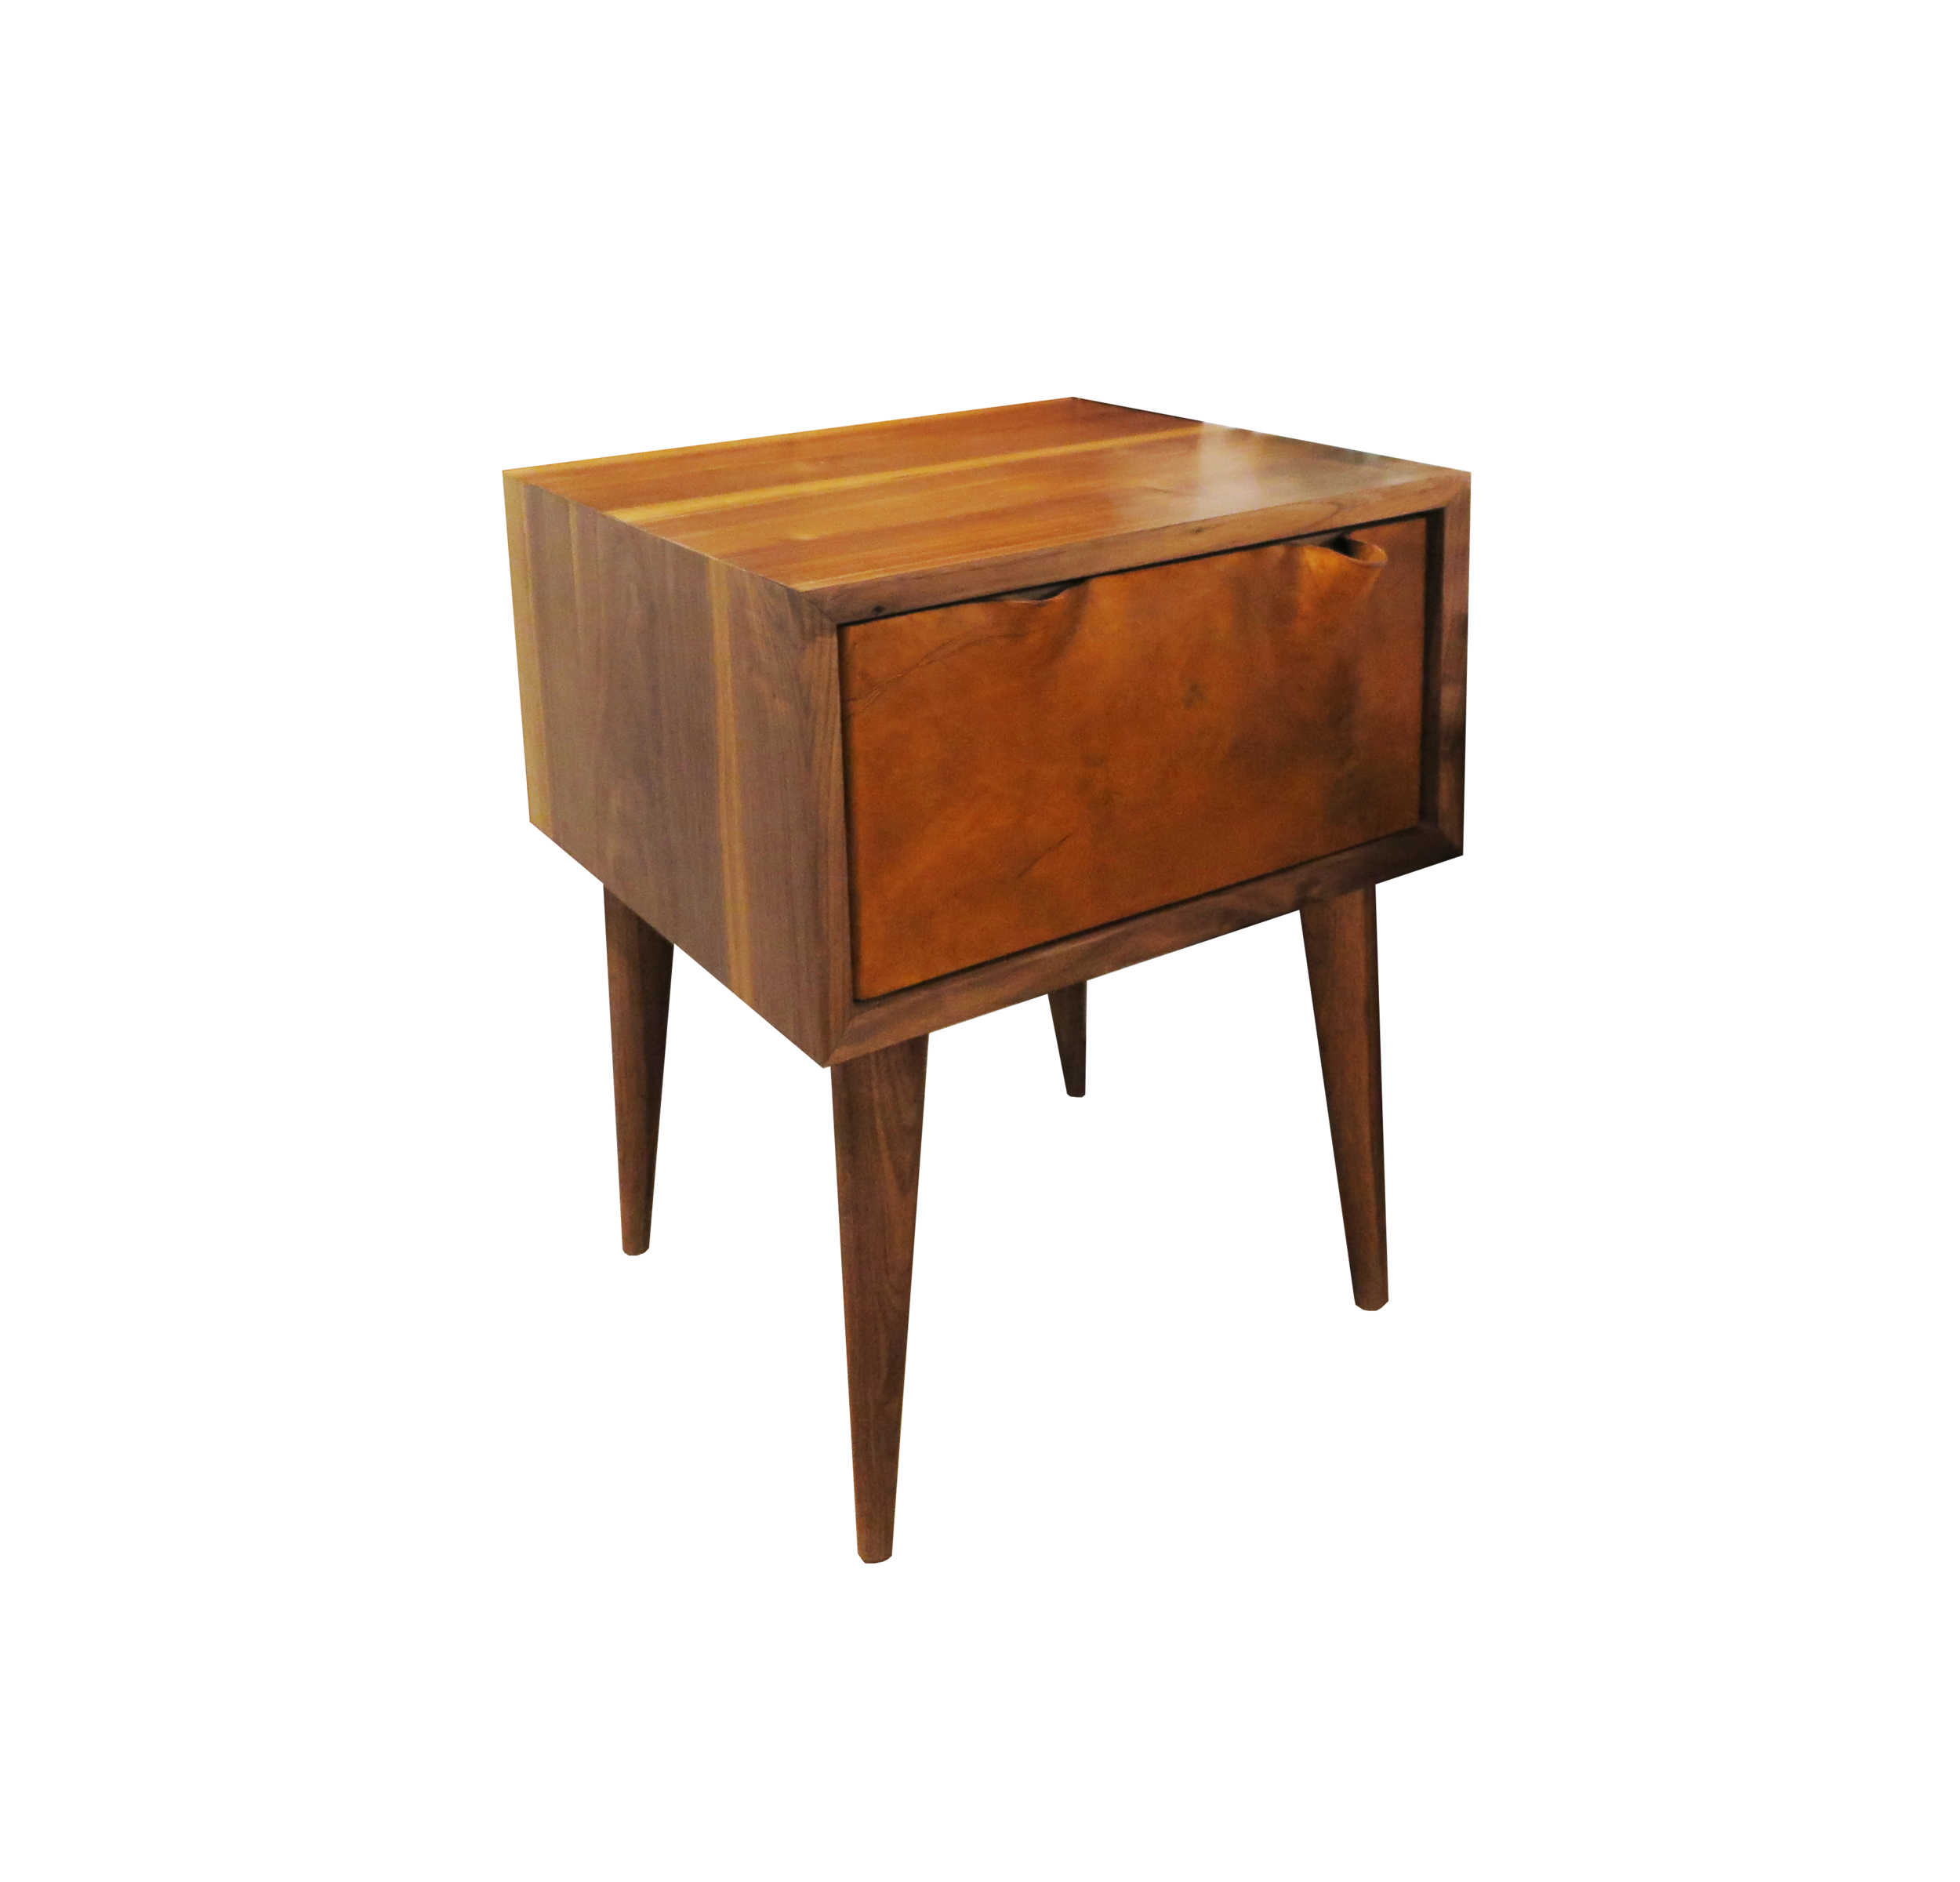 Sidetable Cutout_01.png